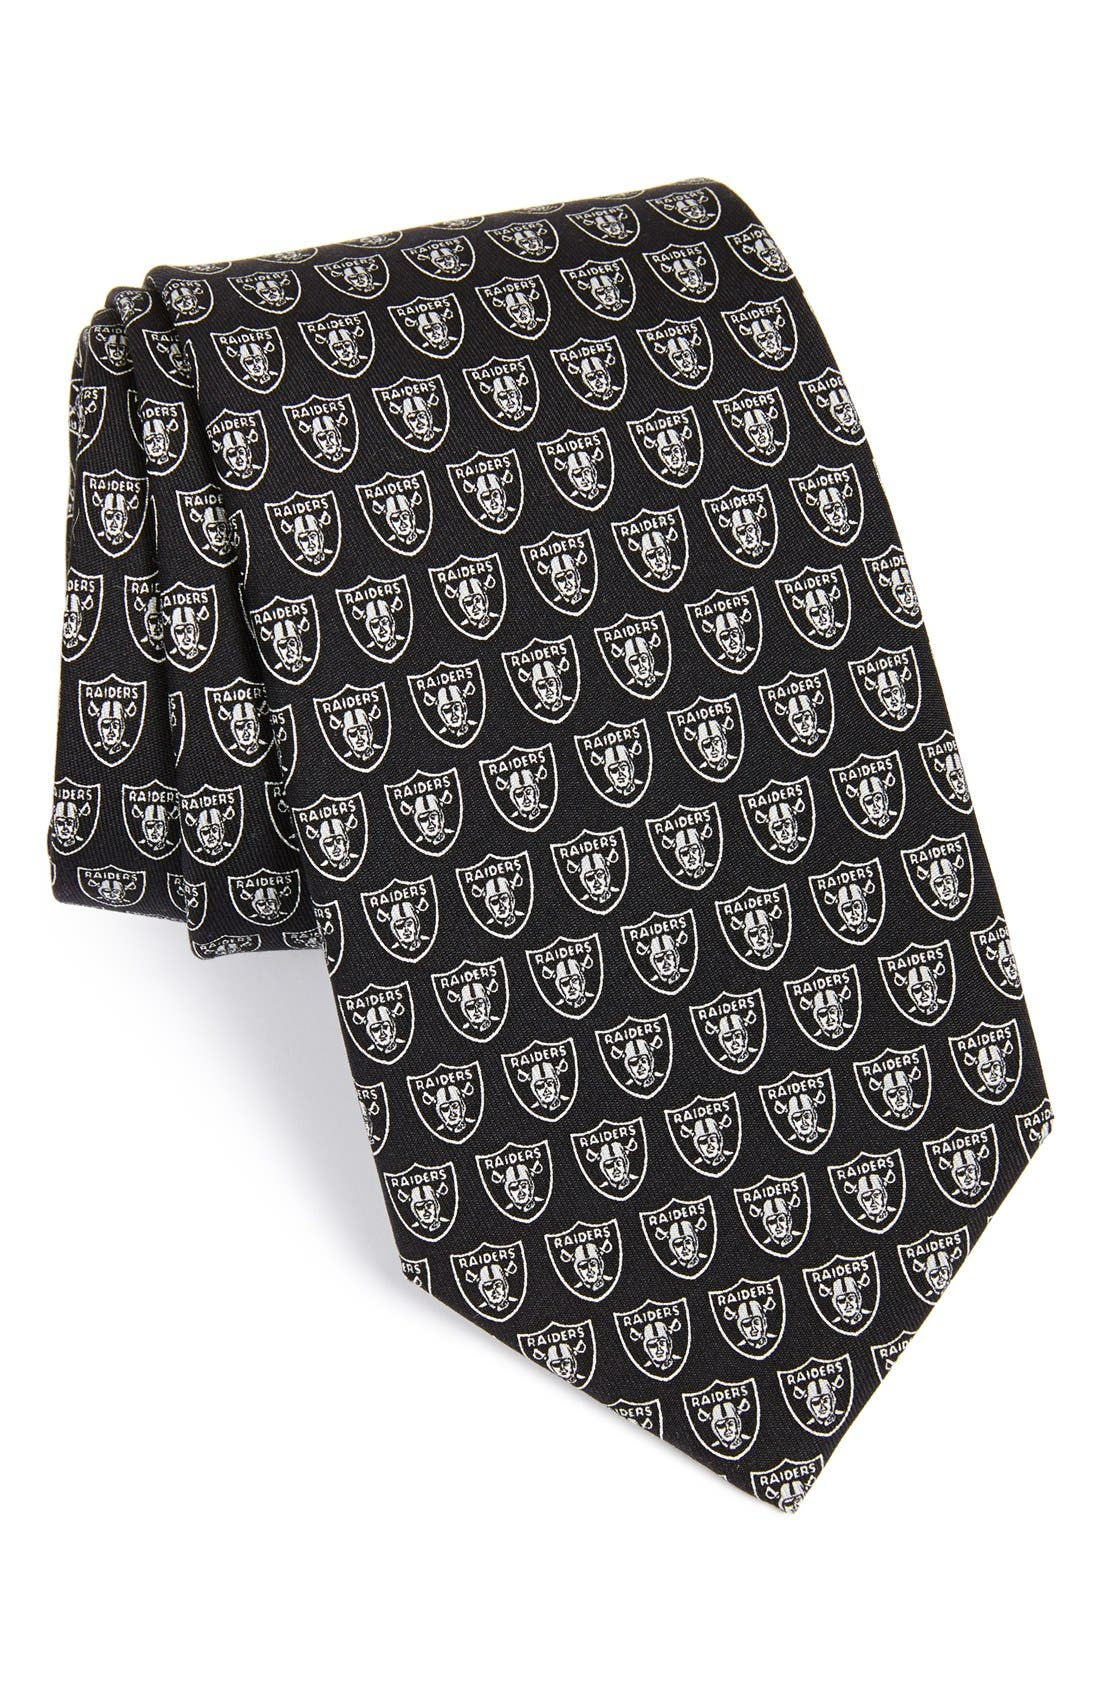 Oakland Raiders - NFL Woven Silk Tie,                         Main,                         color, Black